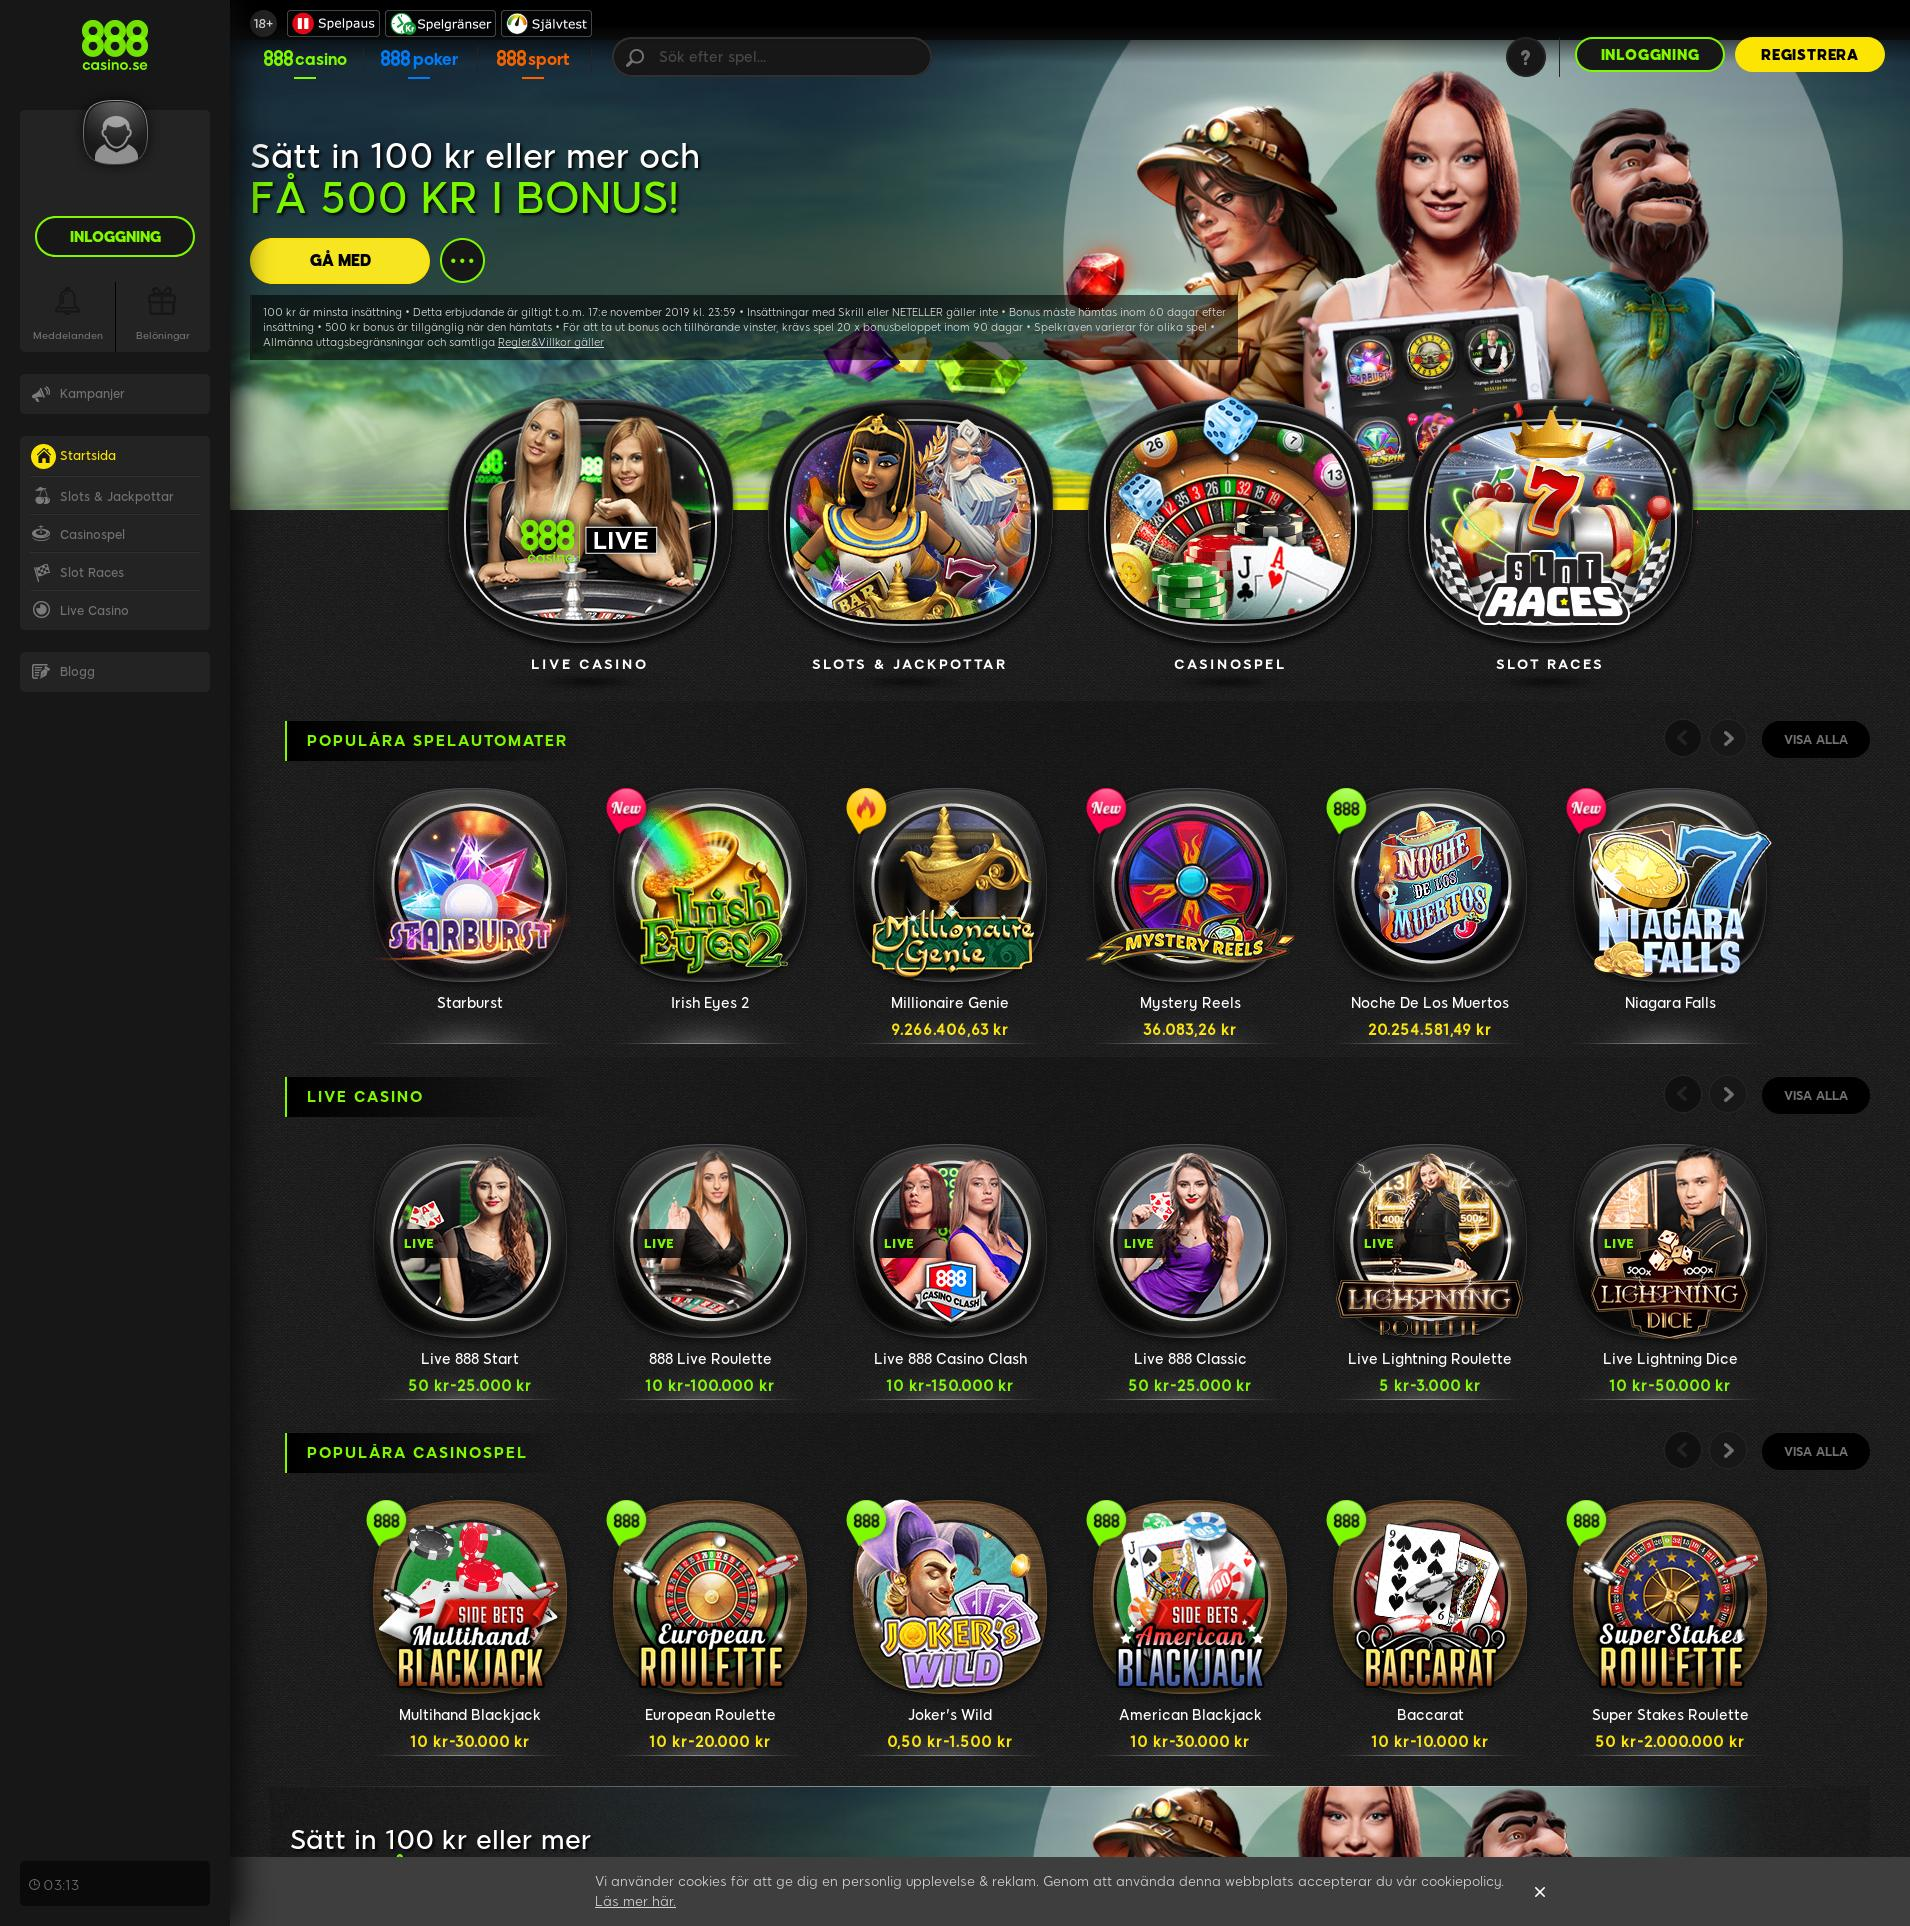 Casino screen Lobby 2019-11-13 for Sweden